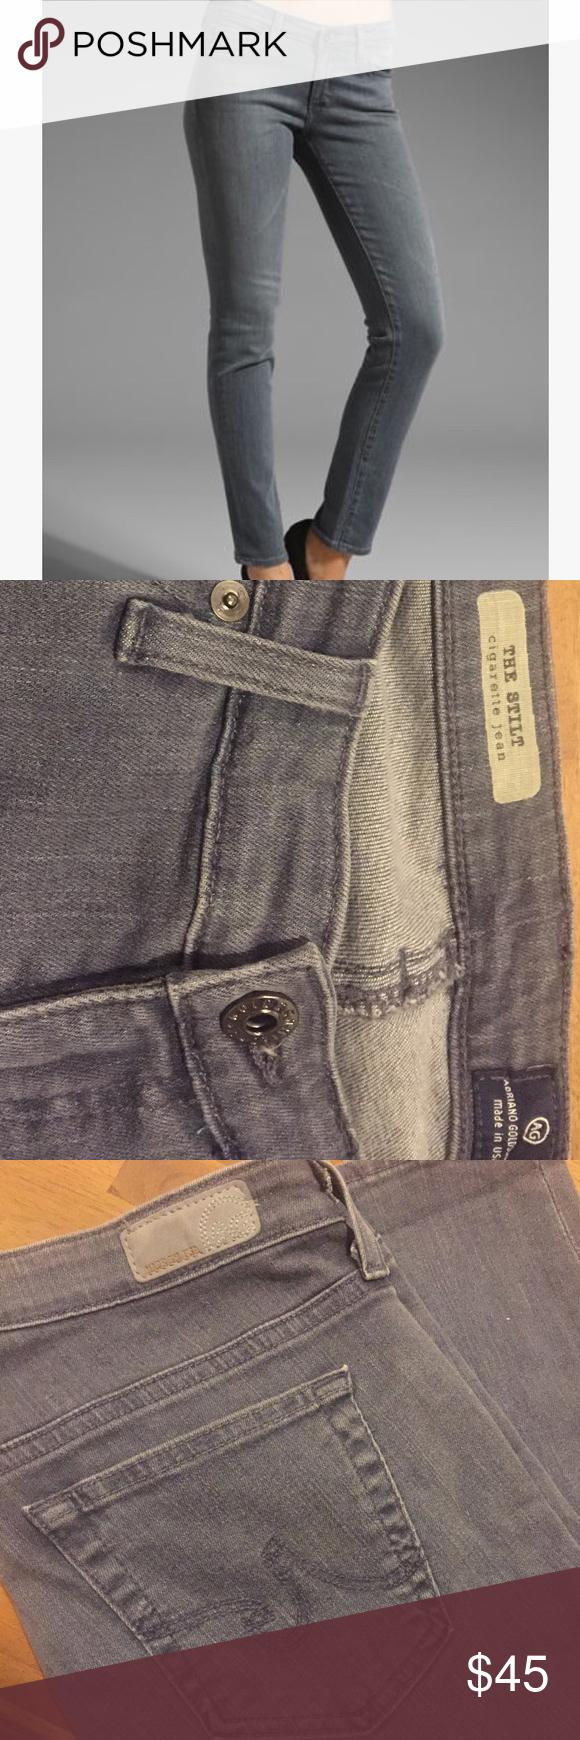 "A This is a pair of AG Adriano Goldshmeid the stilt cigarette jeans. Size 30R in grey. Waist 33"" rise 31"" inseam 31"". 98% cotton 2% ea. Made in USA. Perfect condition. They have only been worn once -- unfortunately they are just a bit too big. AG Adriano Goldschmied Jeans Straight Leg"